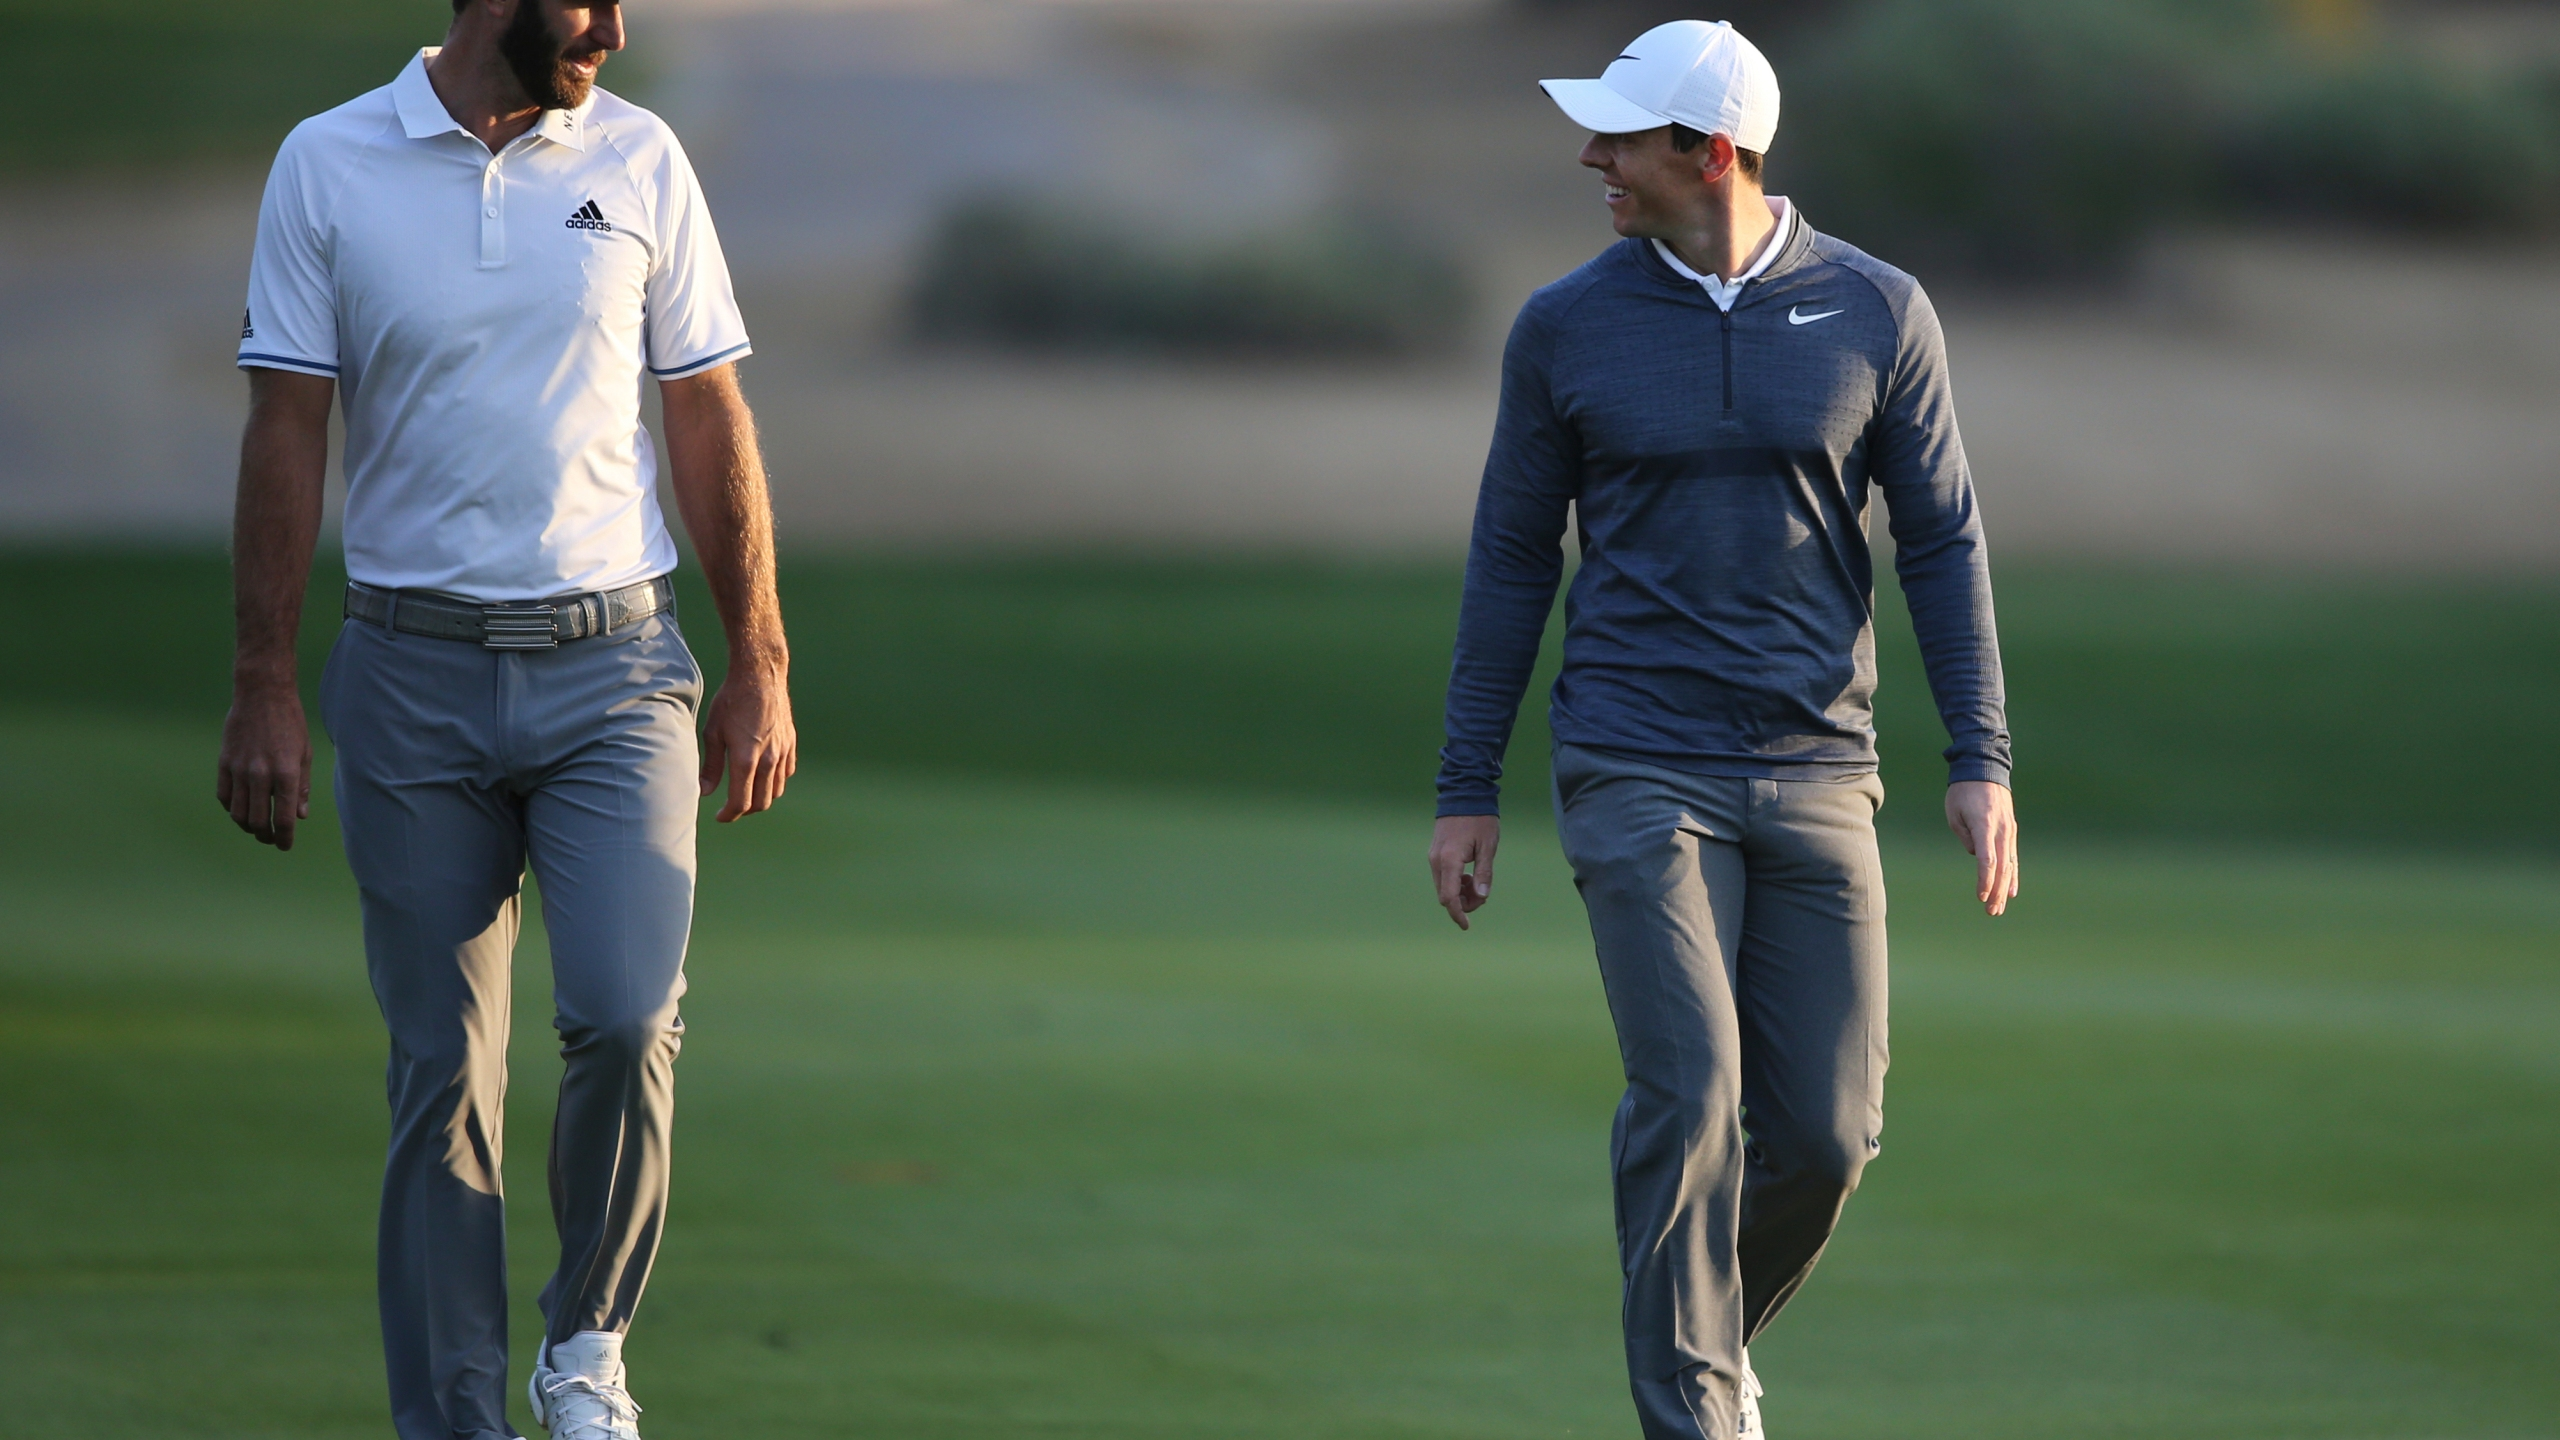 Dustin Johnson, Rory McIlroy